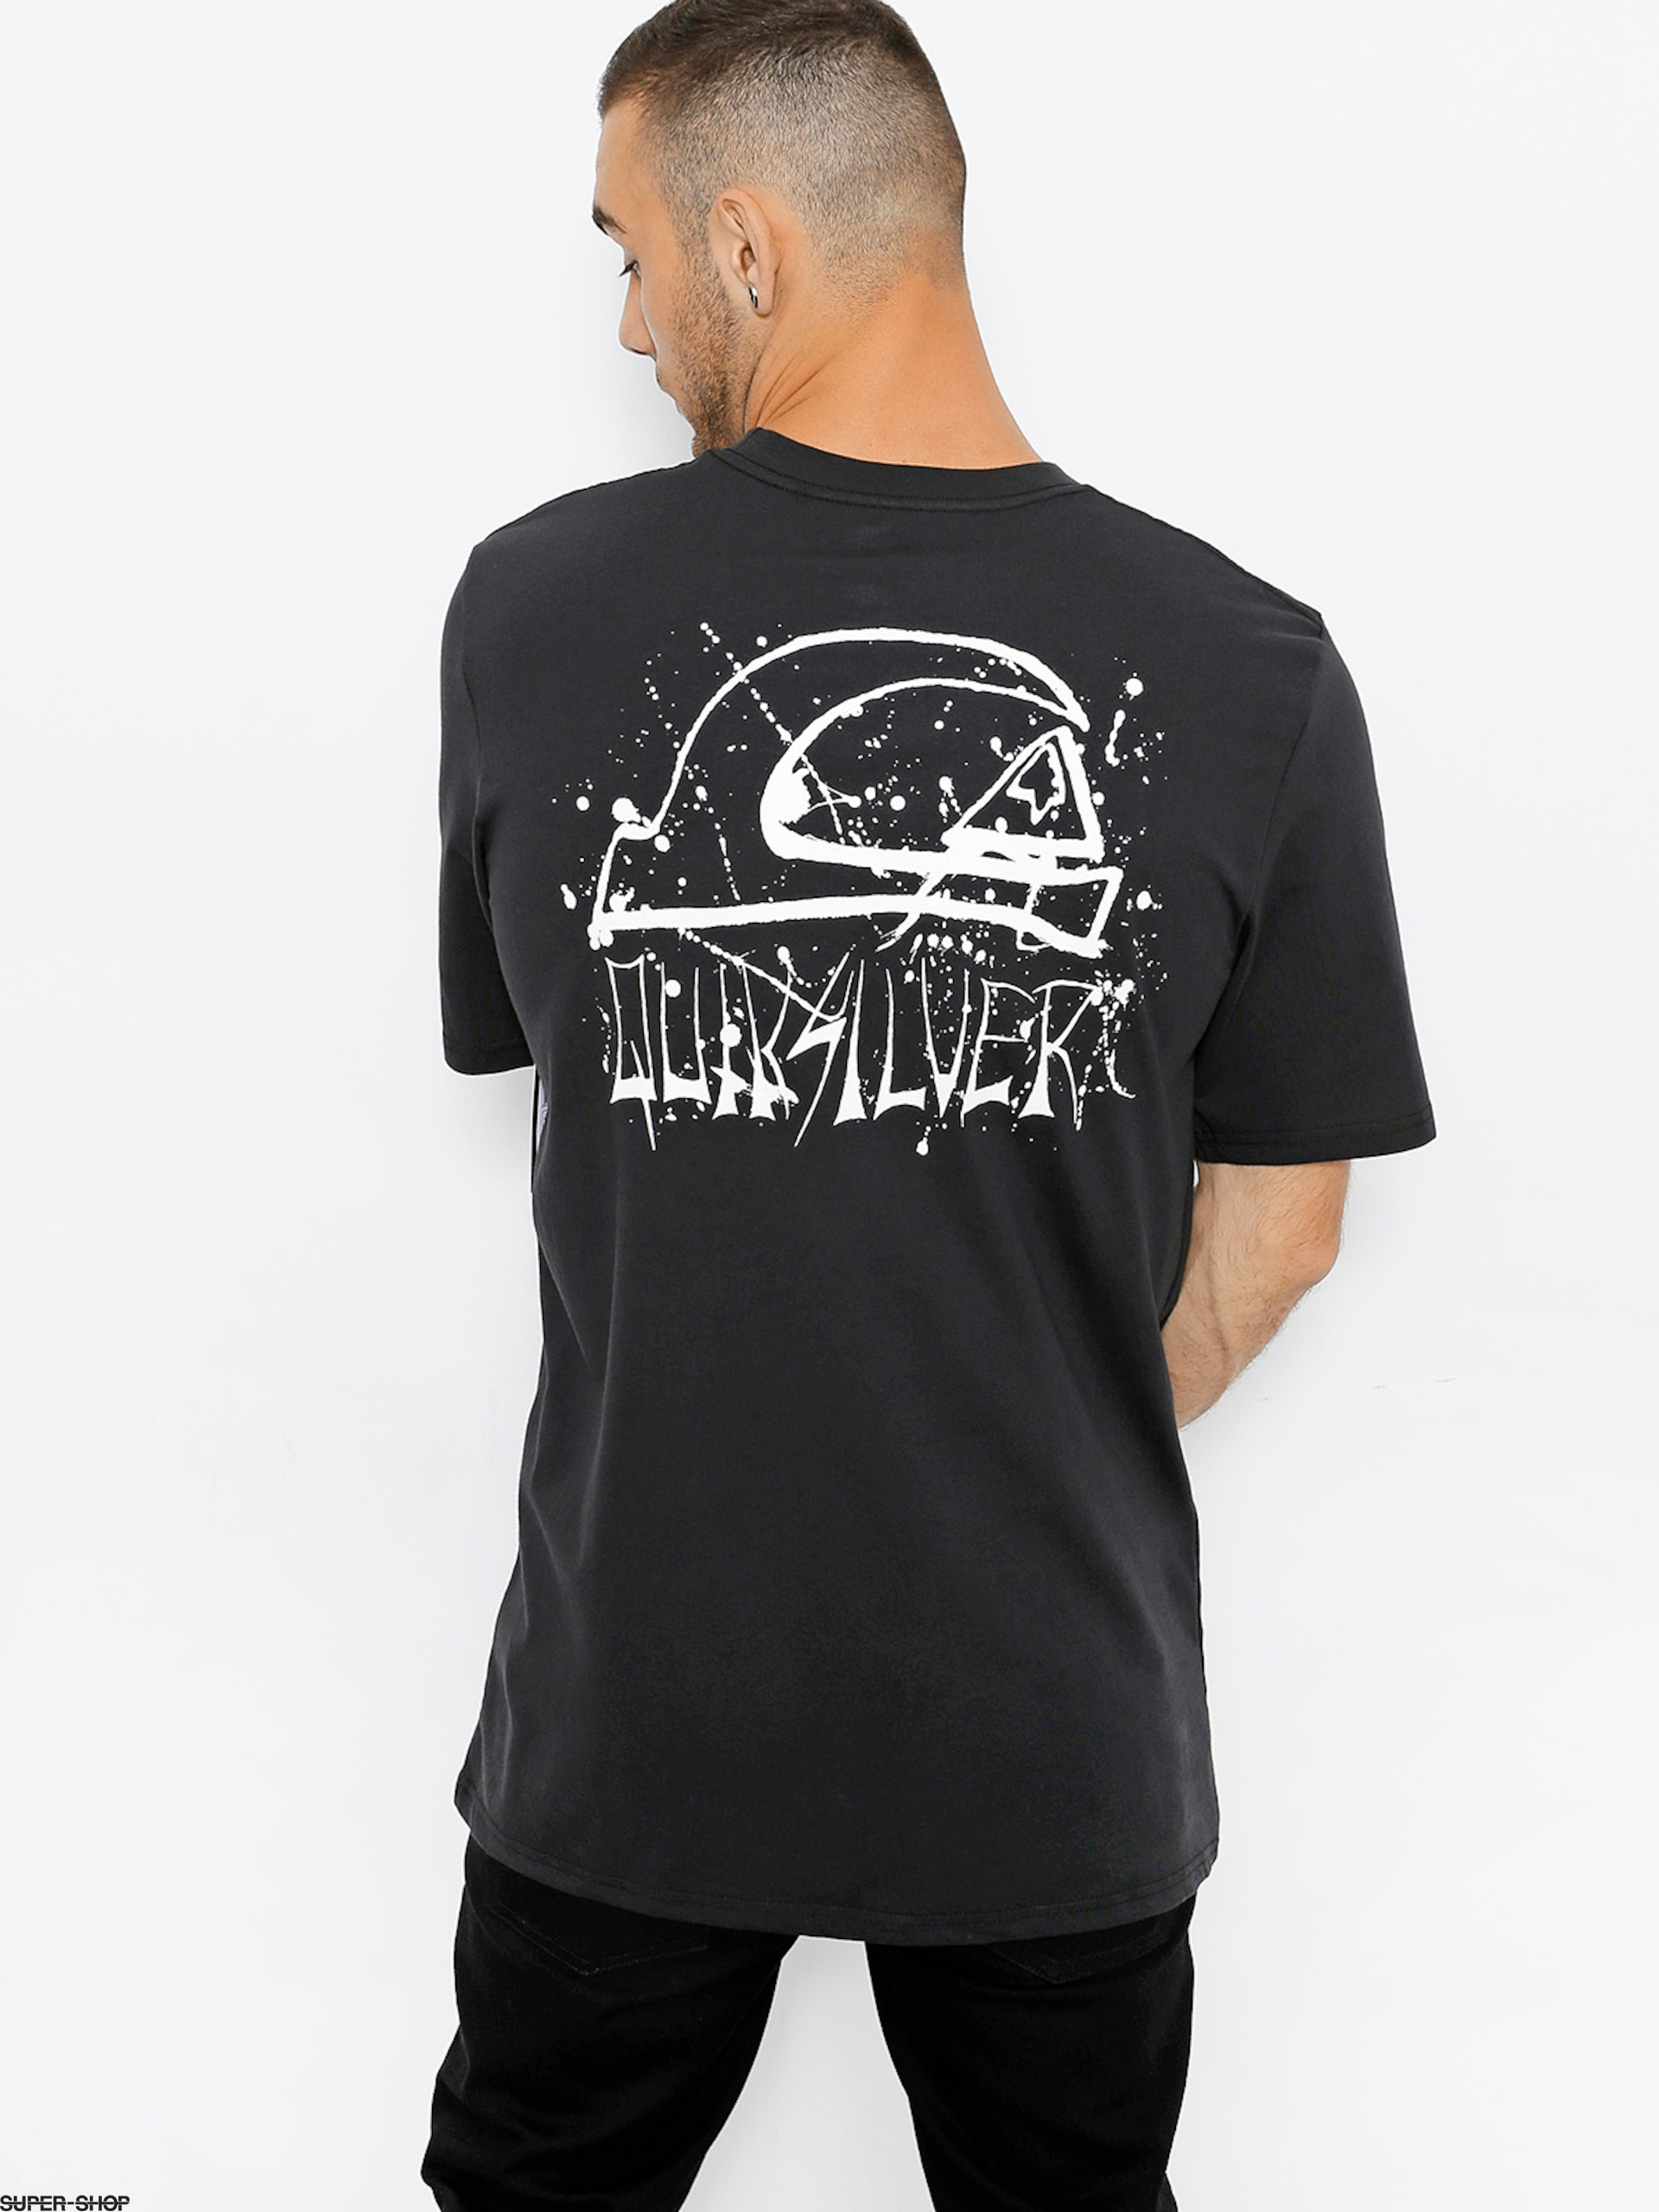 Quiksilver T-Shirt Neon Tendenciess (black)